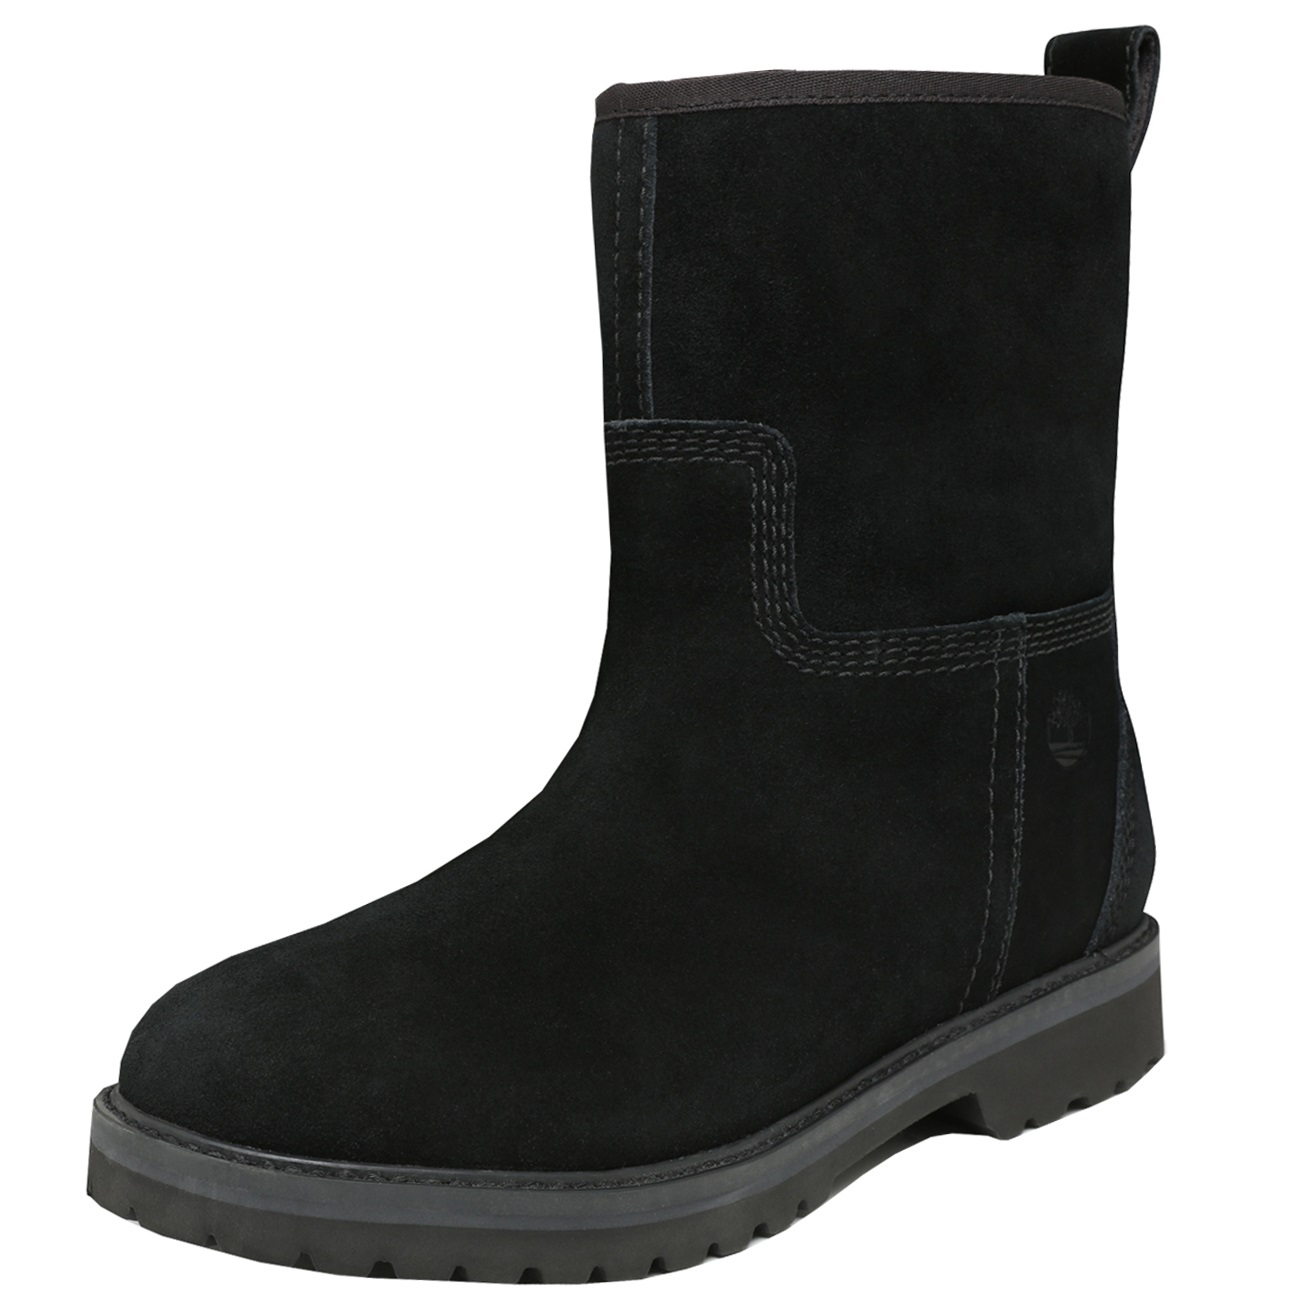 Details about Womens Timberland Chamonix Valley WP Boot Walking Hiking Suede Ankle Boot UK 3 9